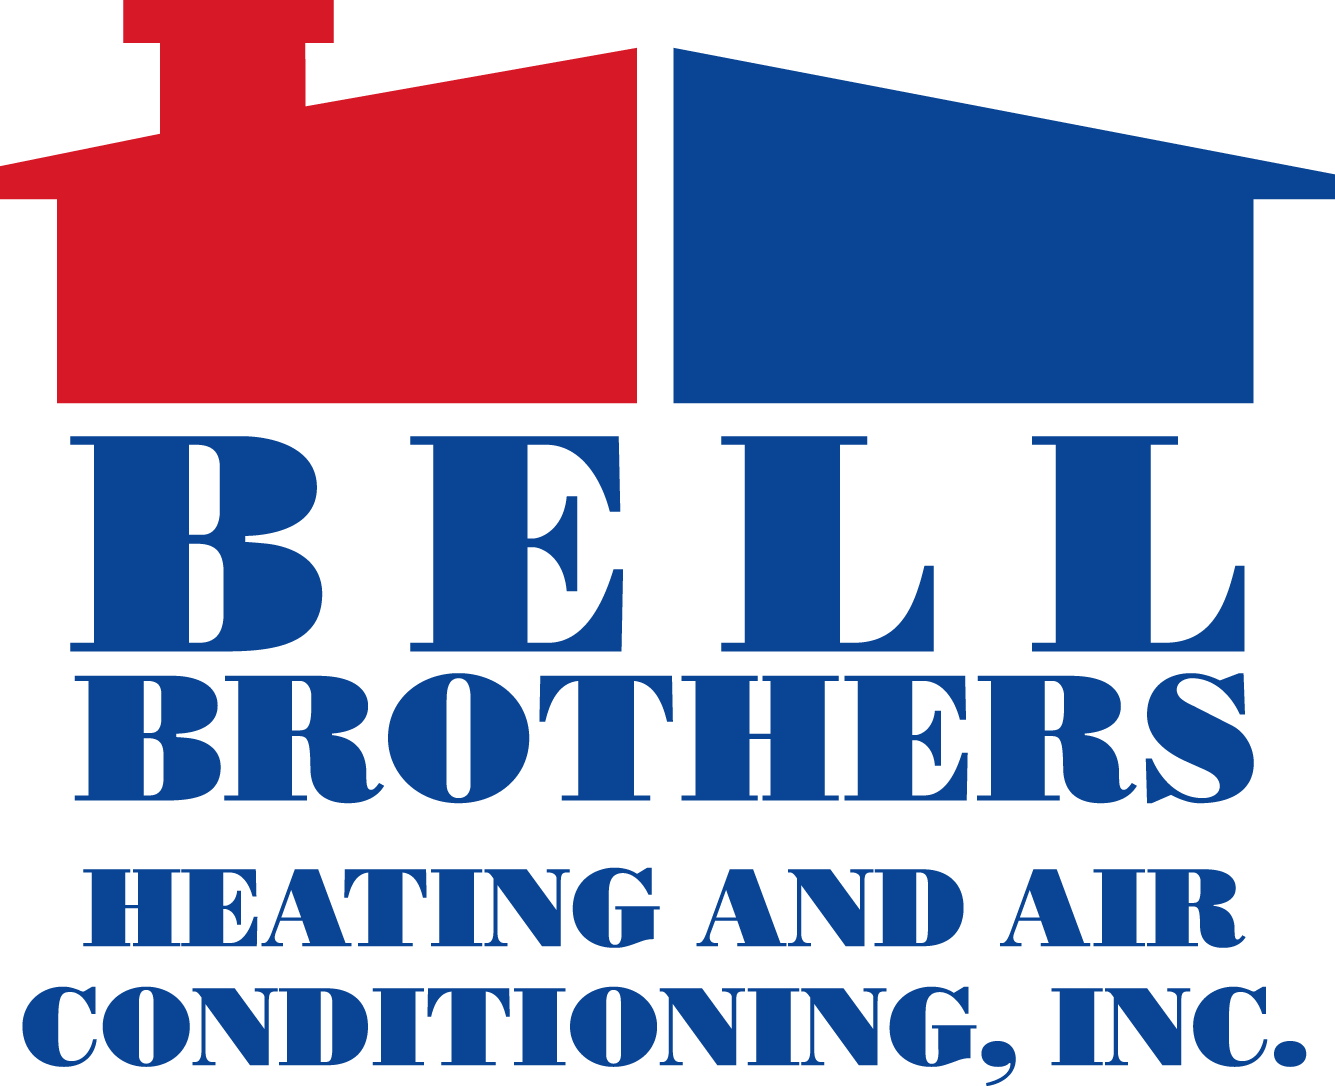 1335x1086 Hvac Des Moines, Ia Bell Brothers Heating And Air Conditioning, Inc